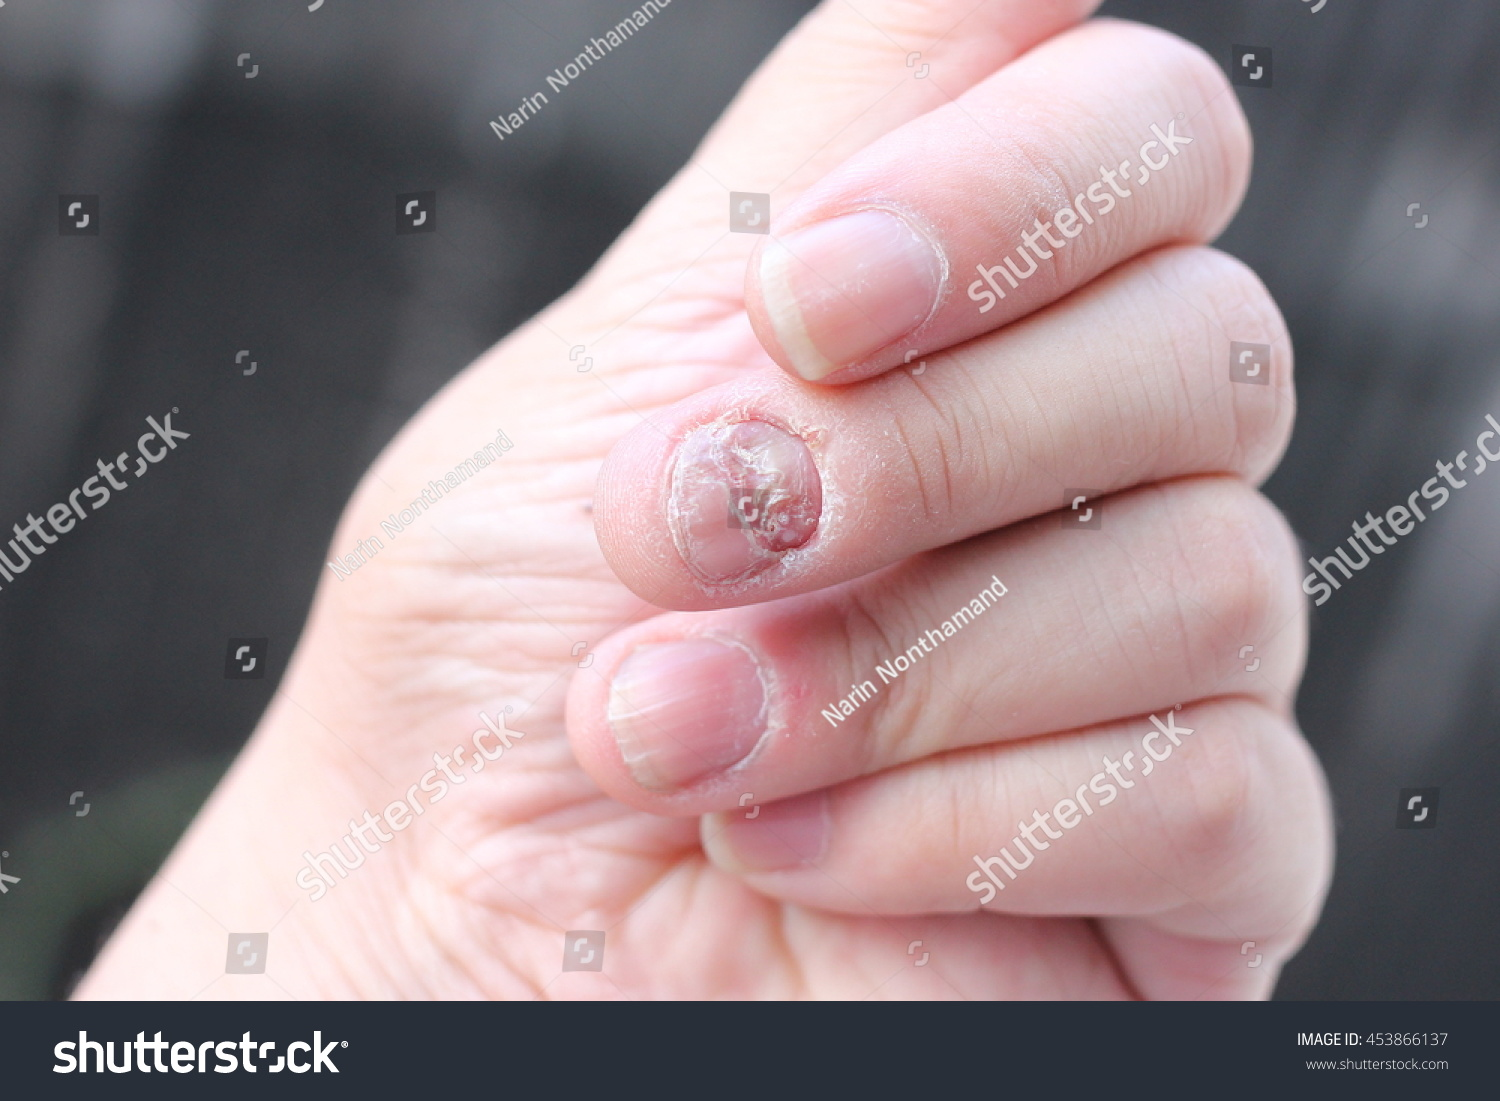 Finger Onychomycosis Soft Focus Stock Photo (Royalty Free) 453866137 ...